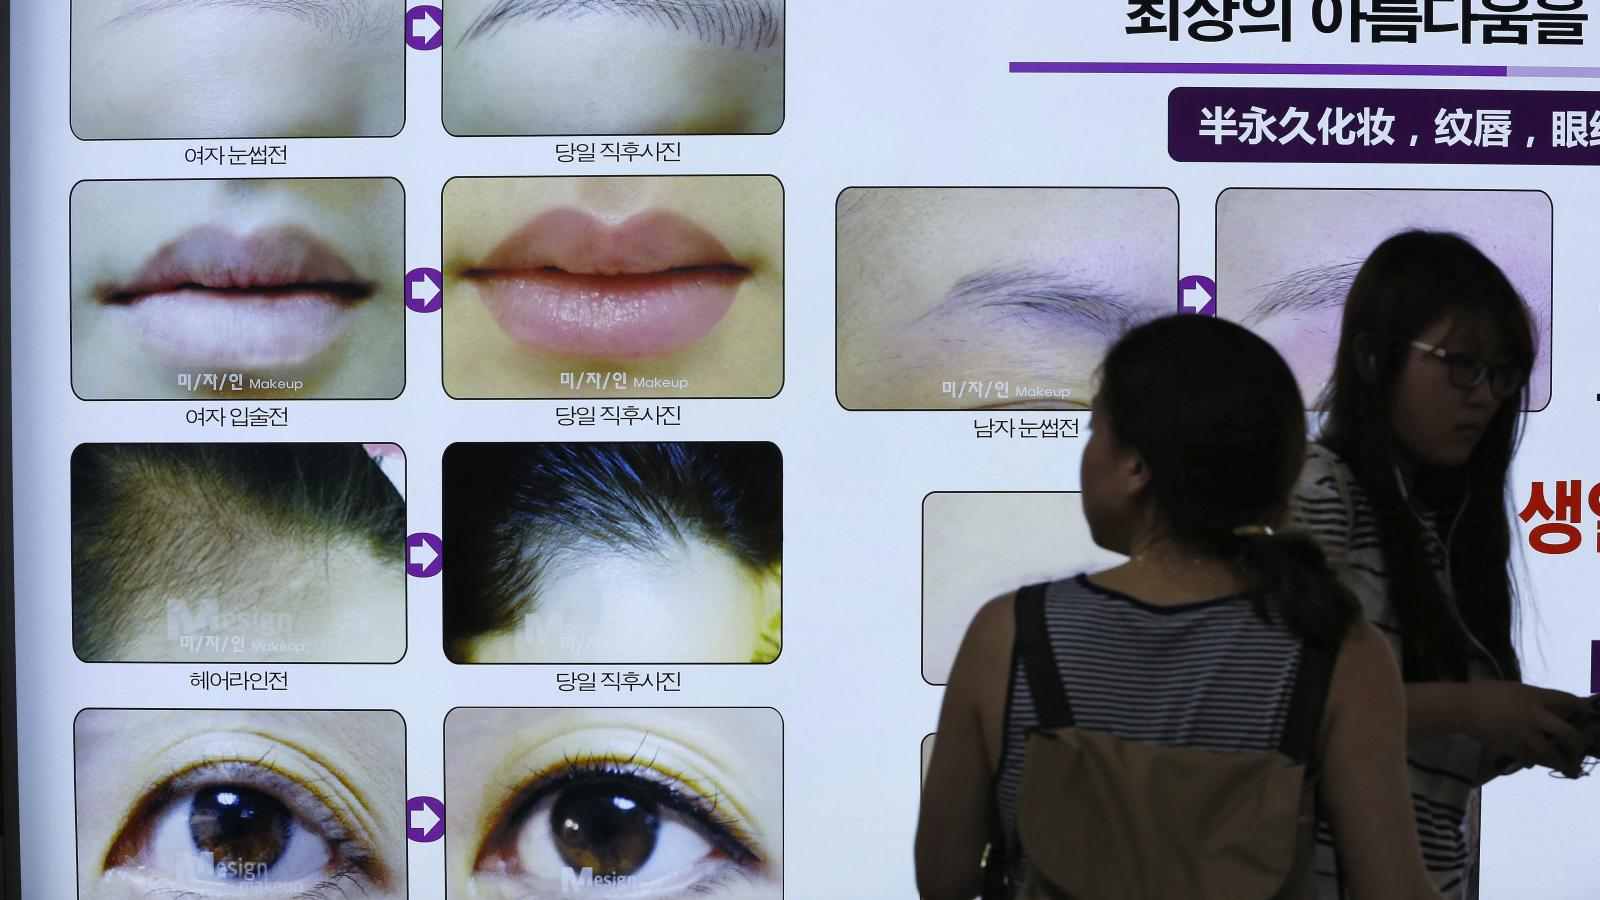 South Korea is engaged in an epic battle between feminism and deep